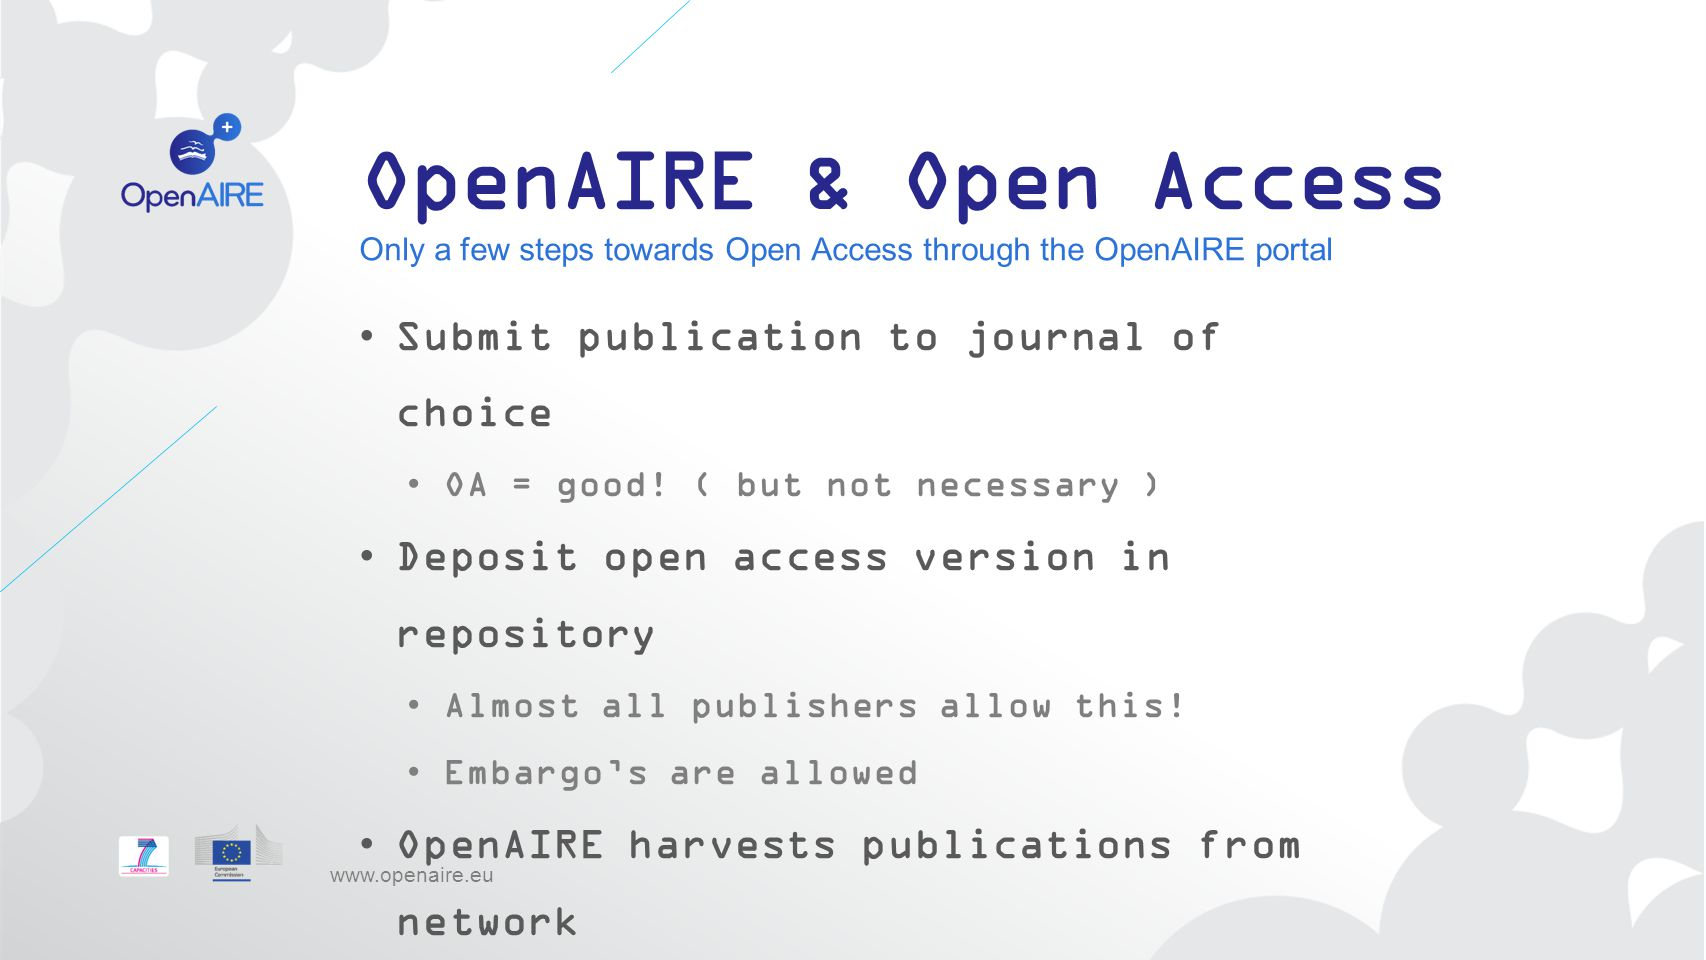 OpenAIRE & Open Access Submit publication to journal of choice